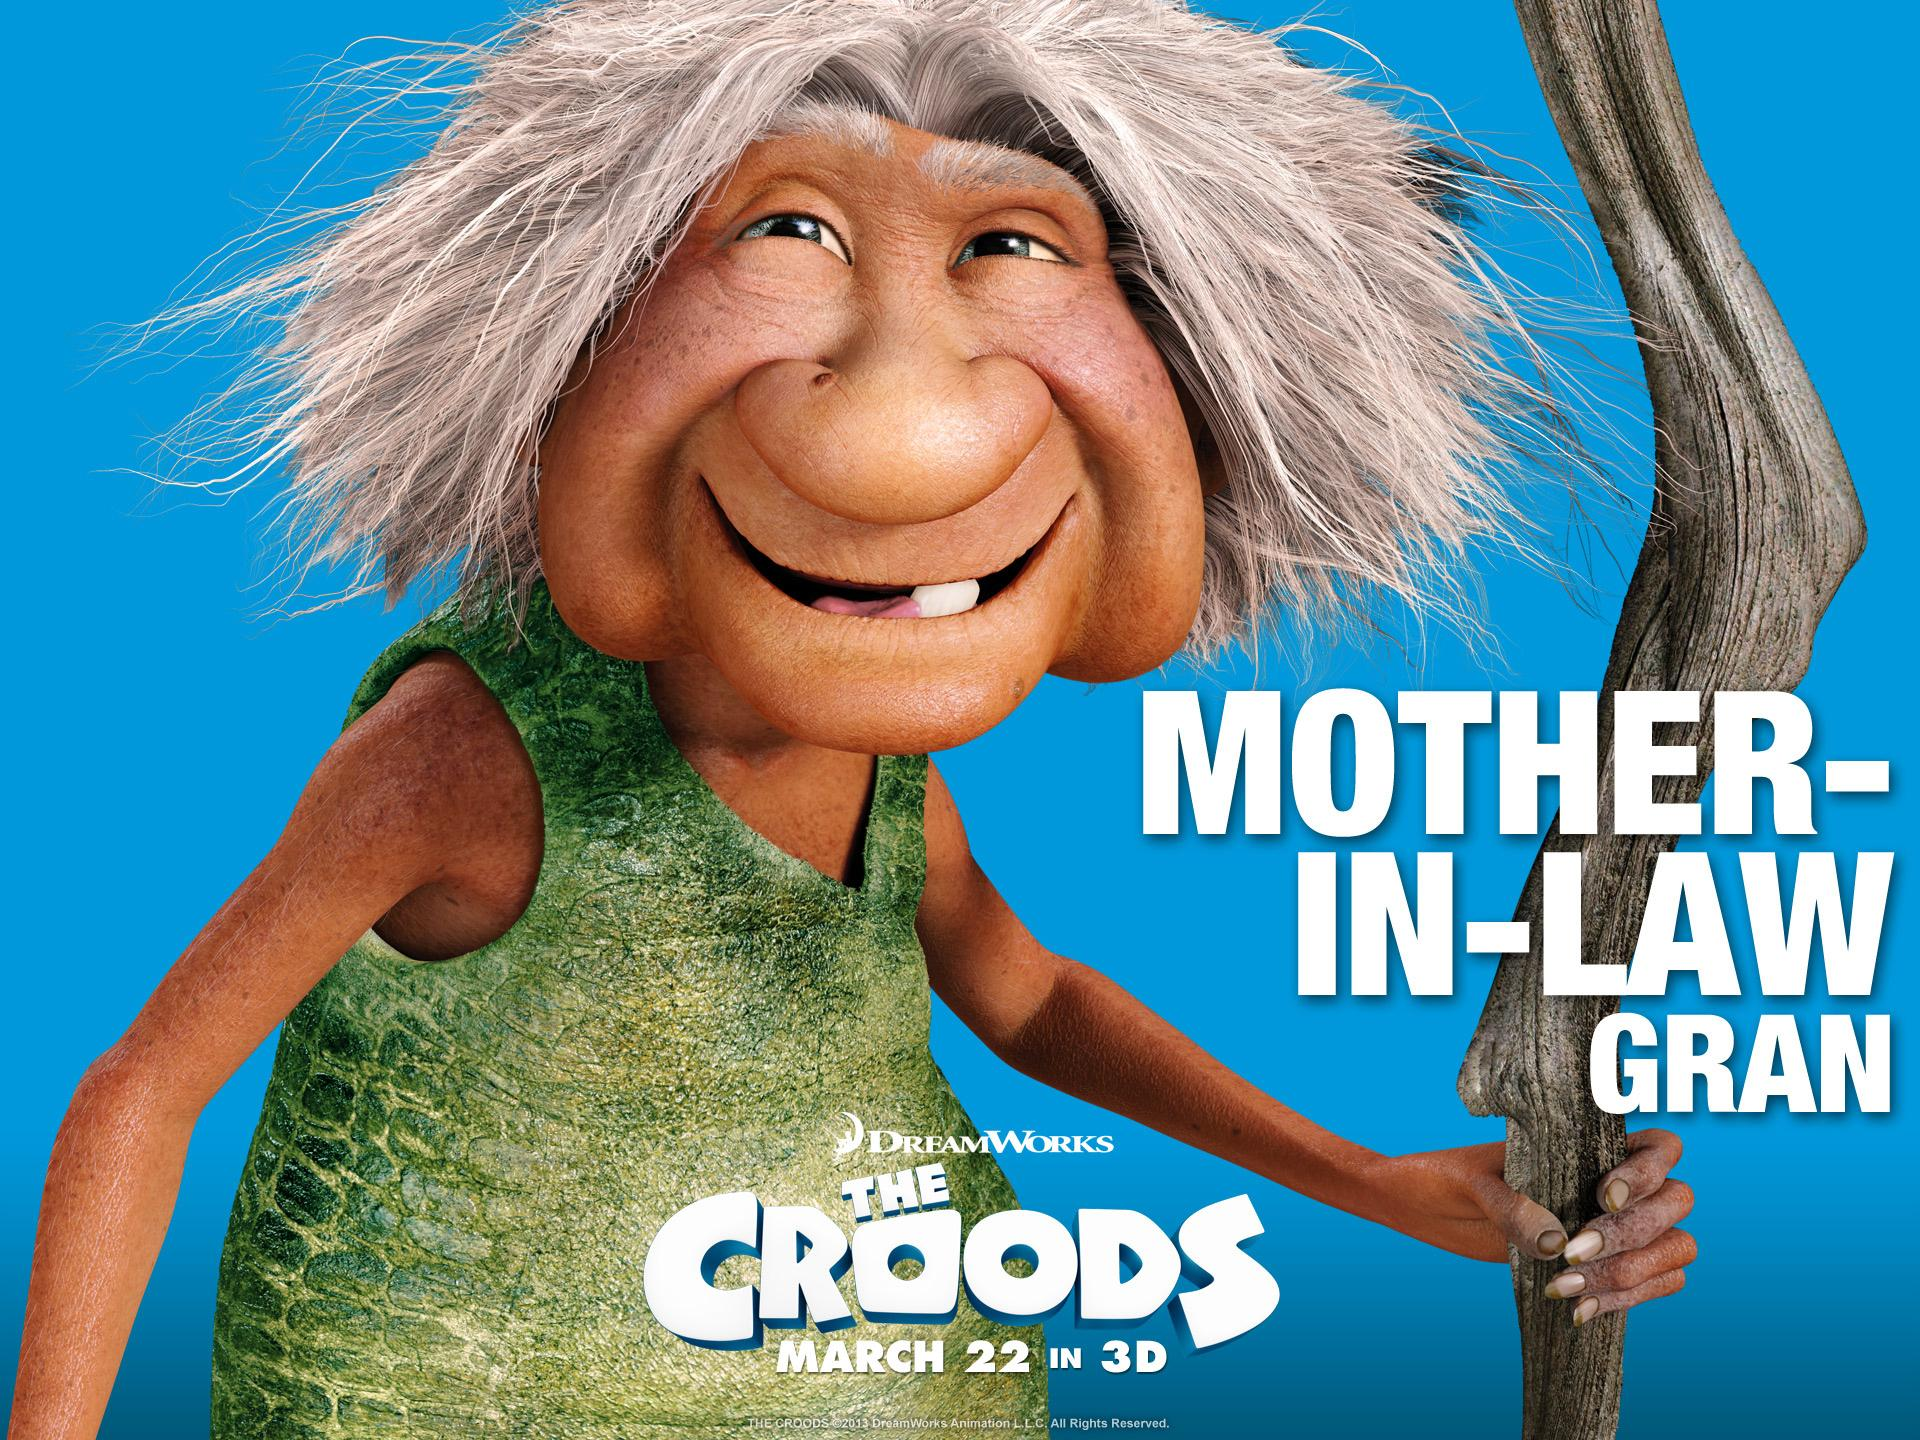 the croods 720p free download